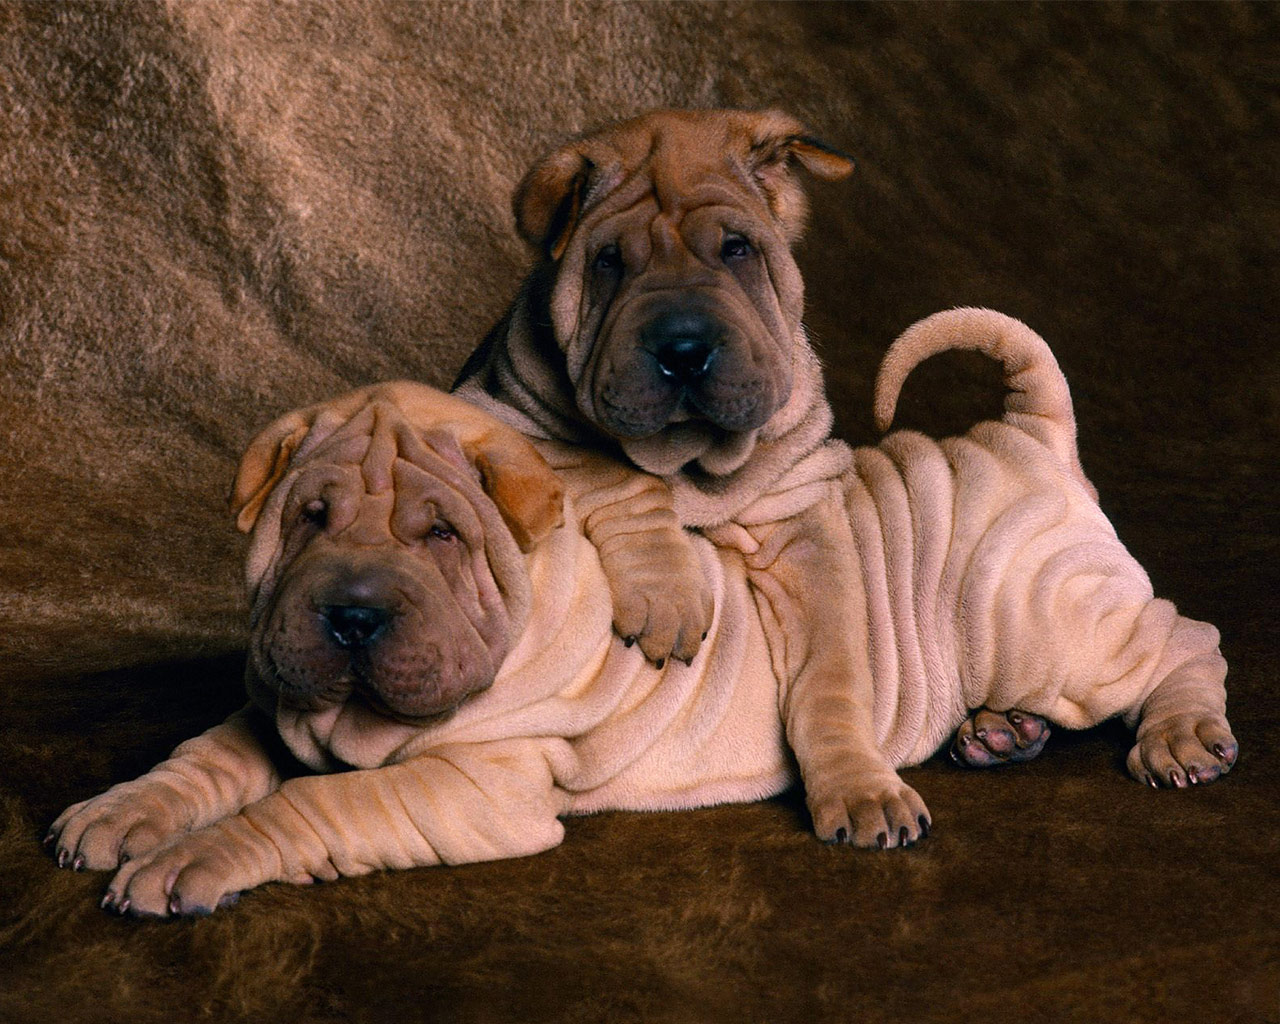 Shar Pei Puppies: Shar Img Shar Pei Puppies Breed